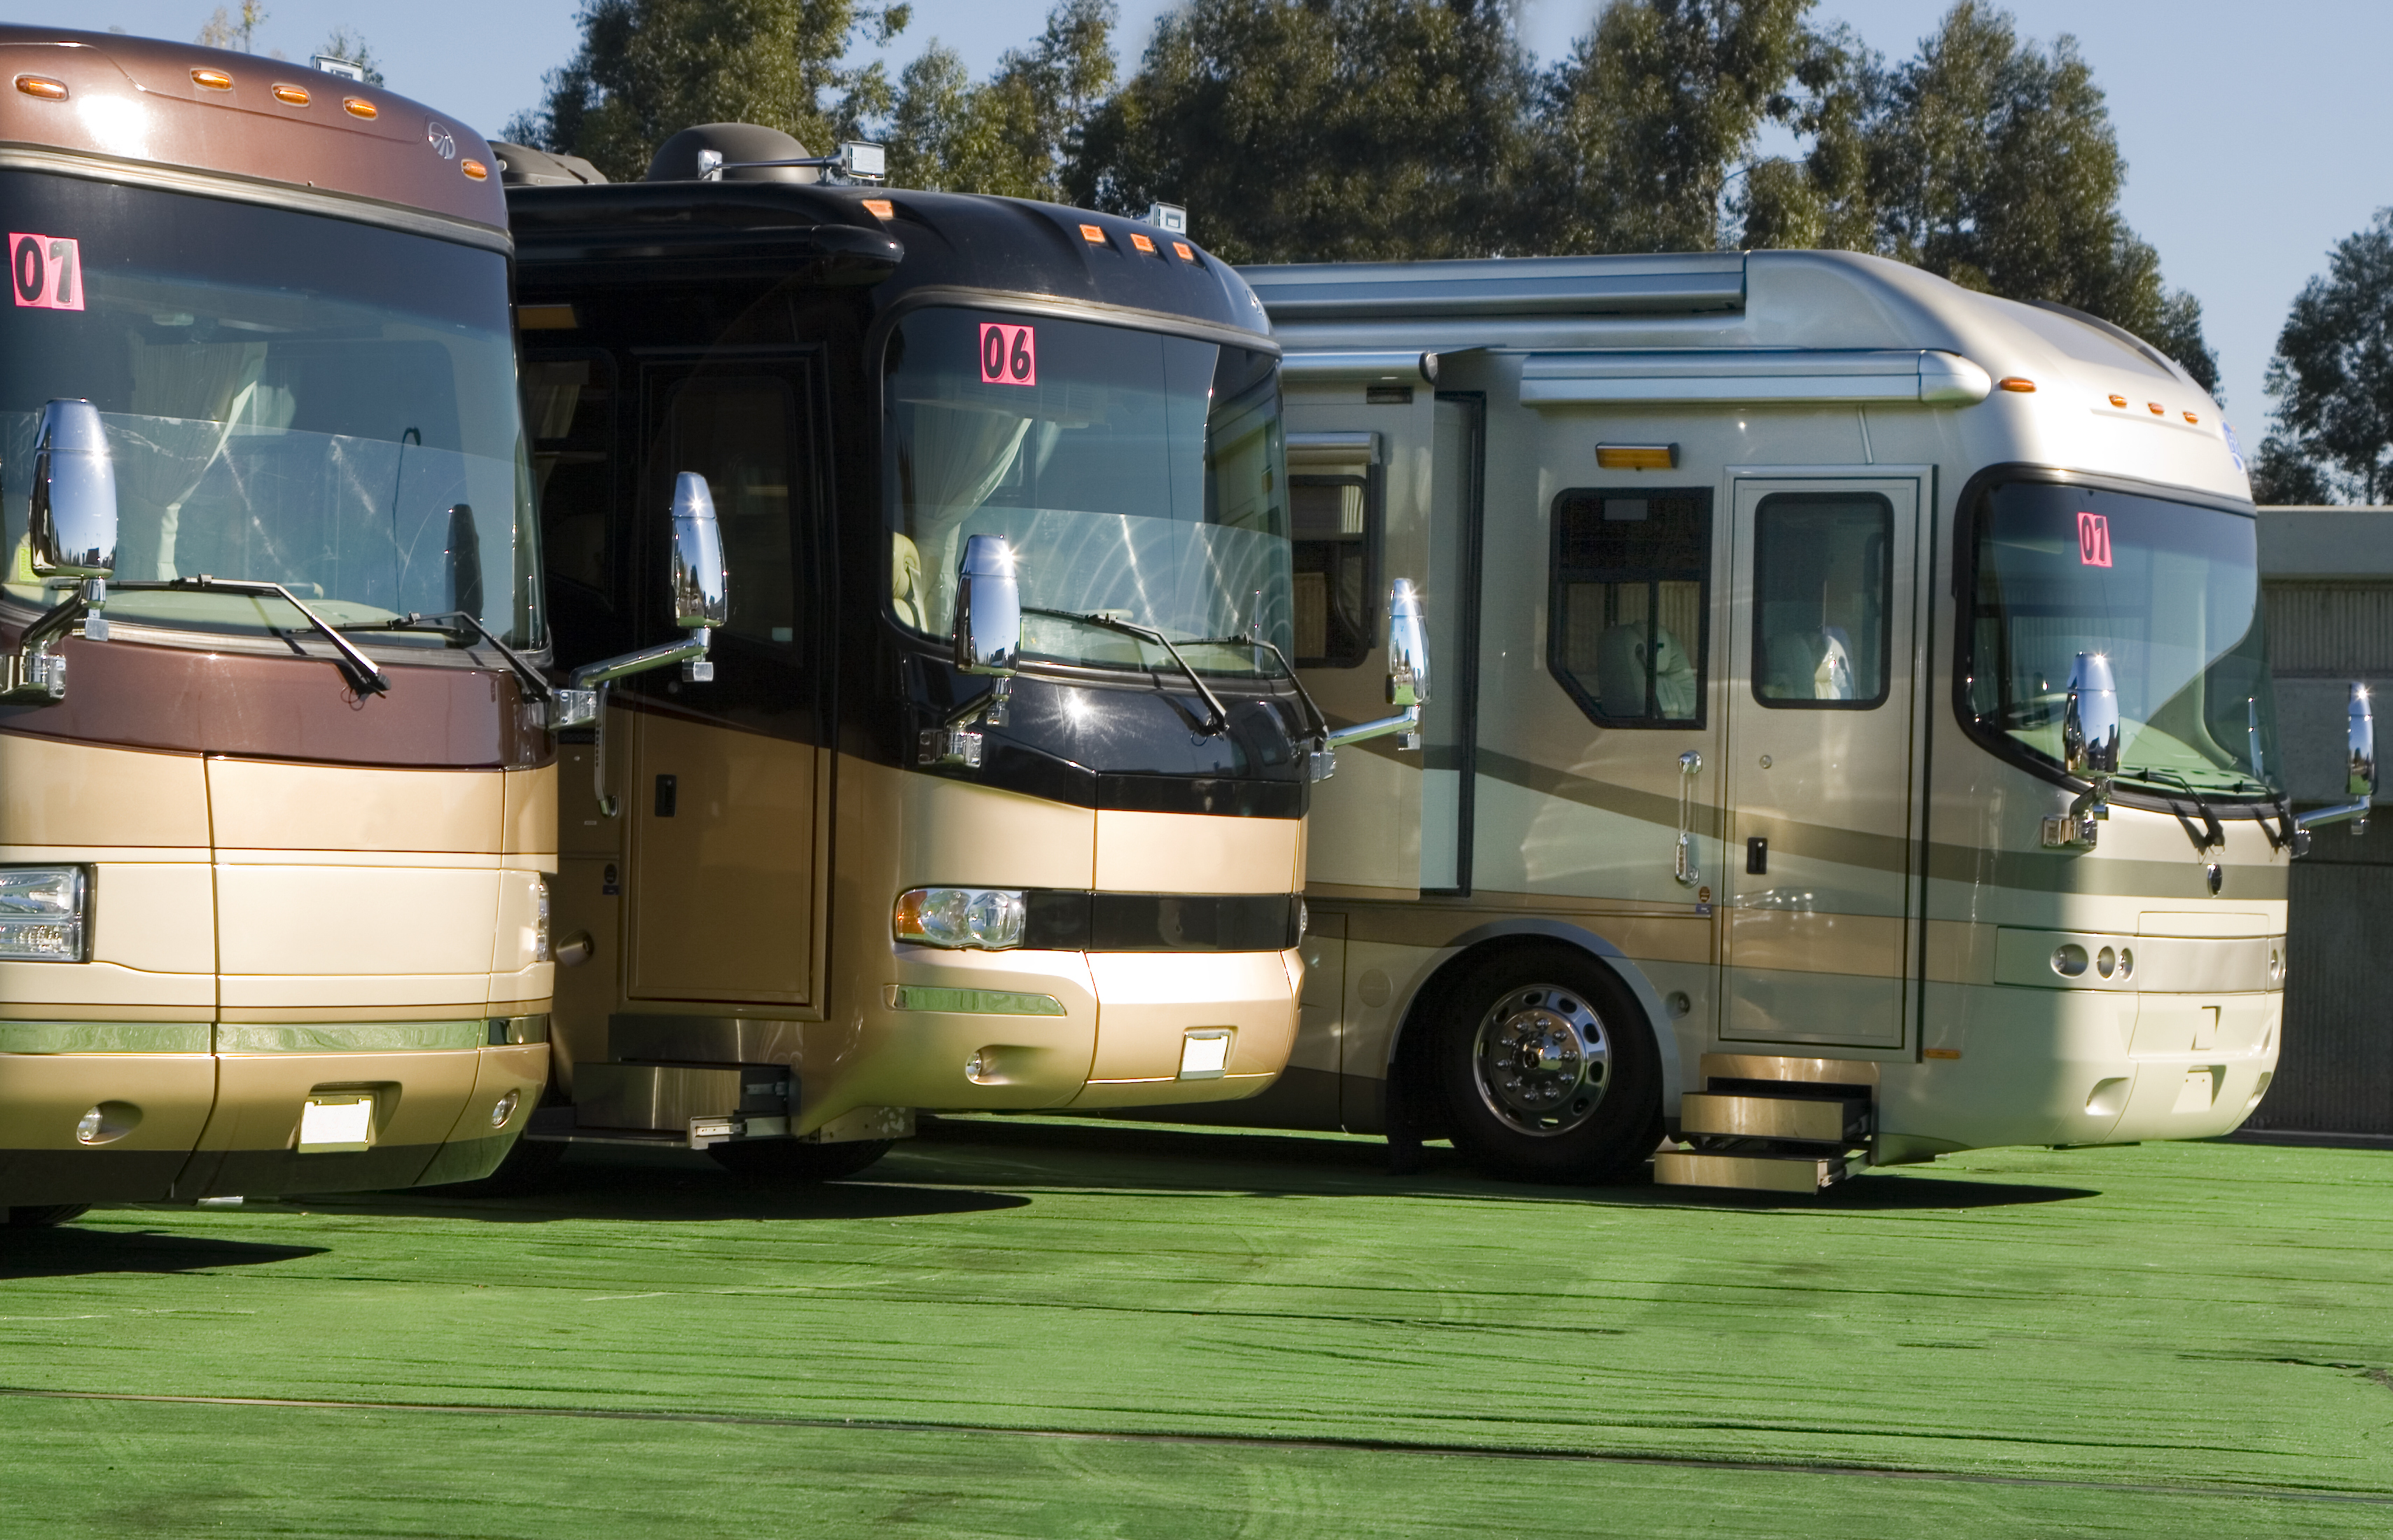 Bayside RVs – Mobile Service, Repair and Lease to Own – Lease to Own